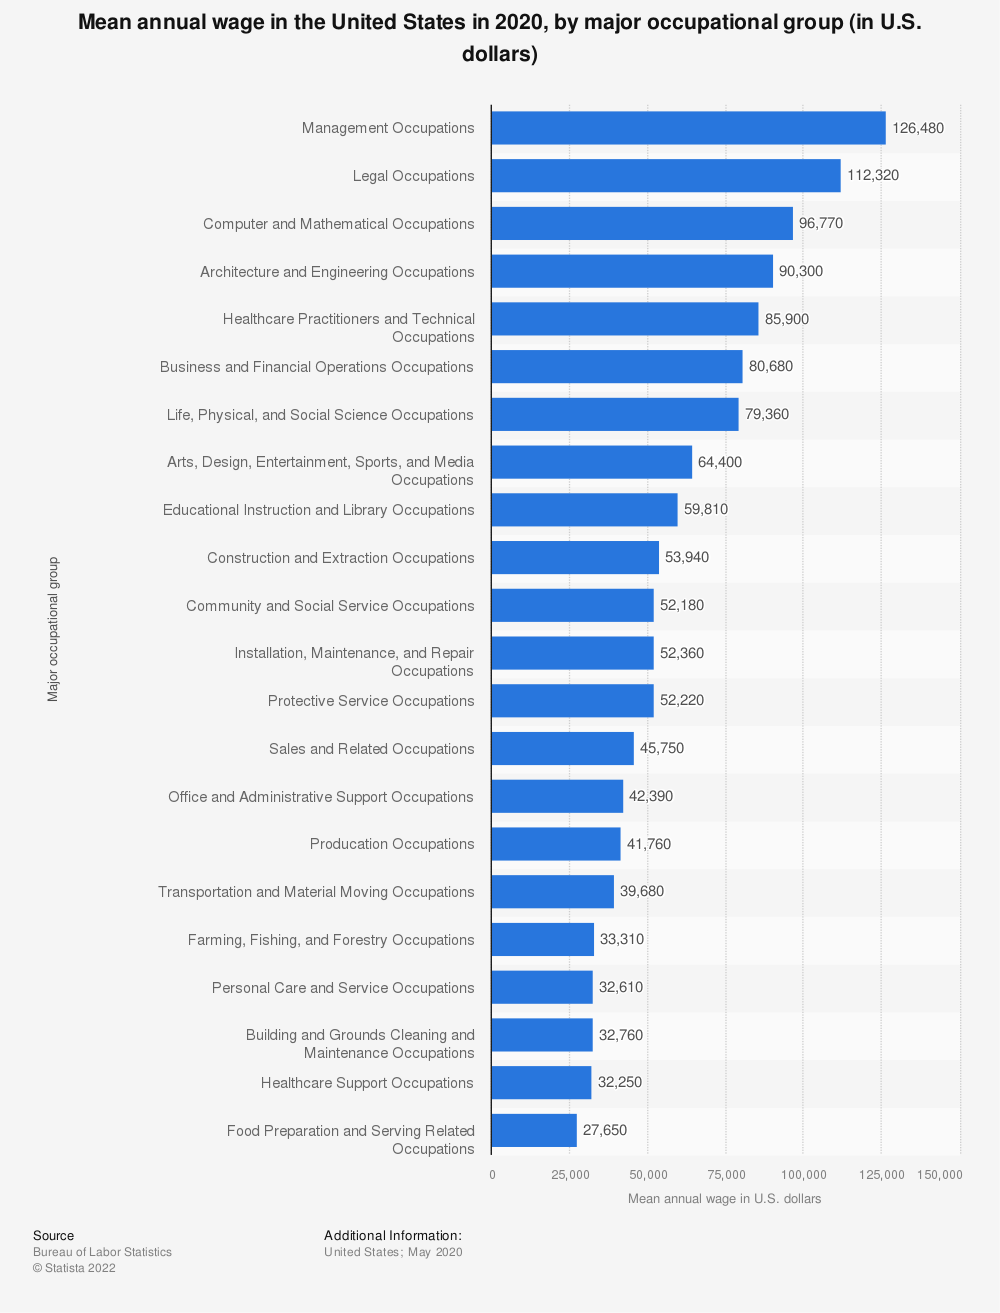 Statistic: Mean annual wage in the United States in 2019, by major occupational group (in U.S. dollars) | Statista